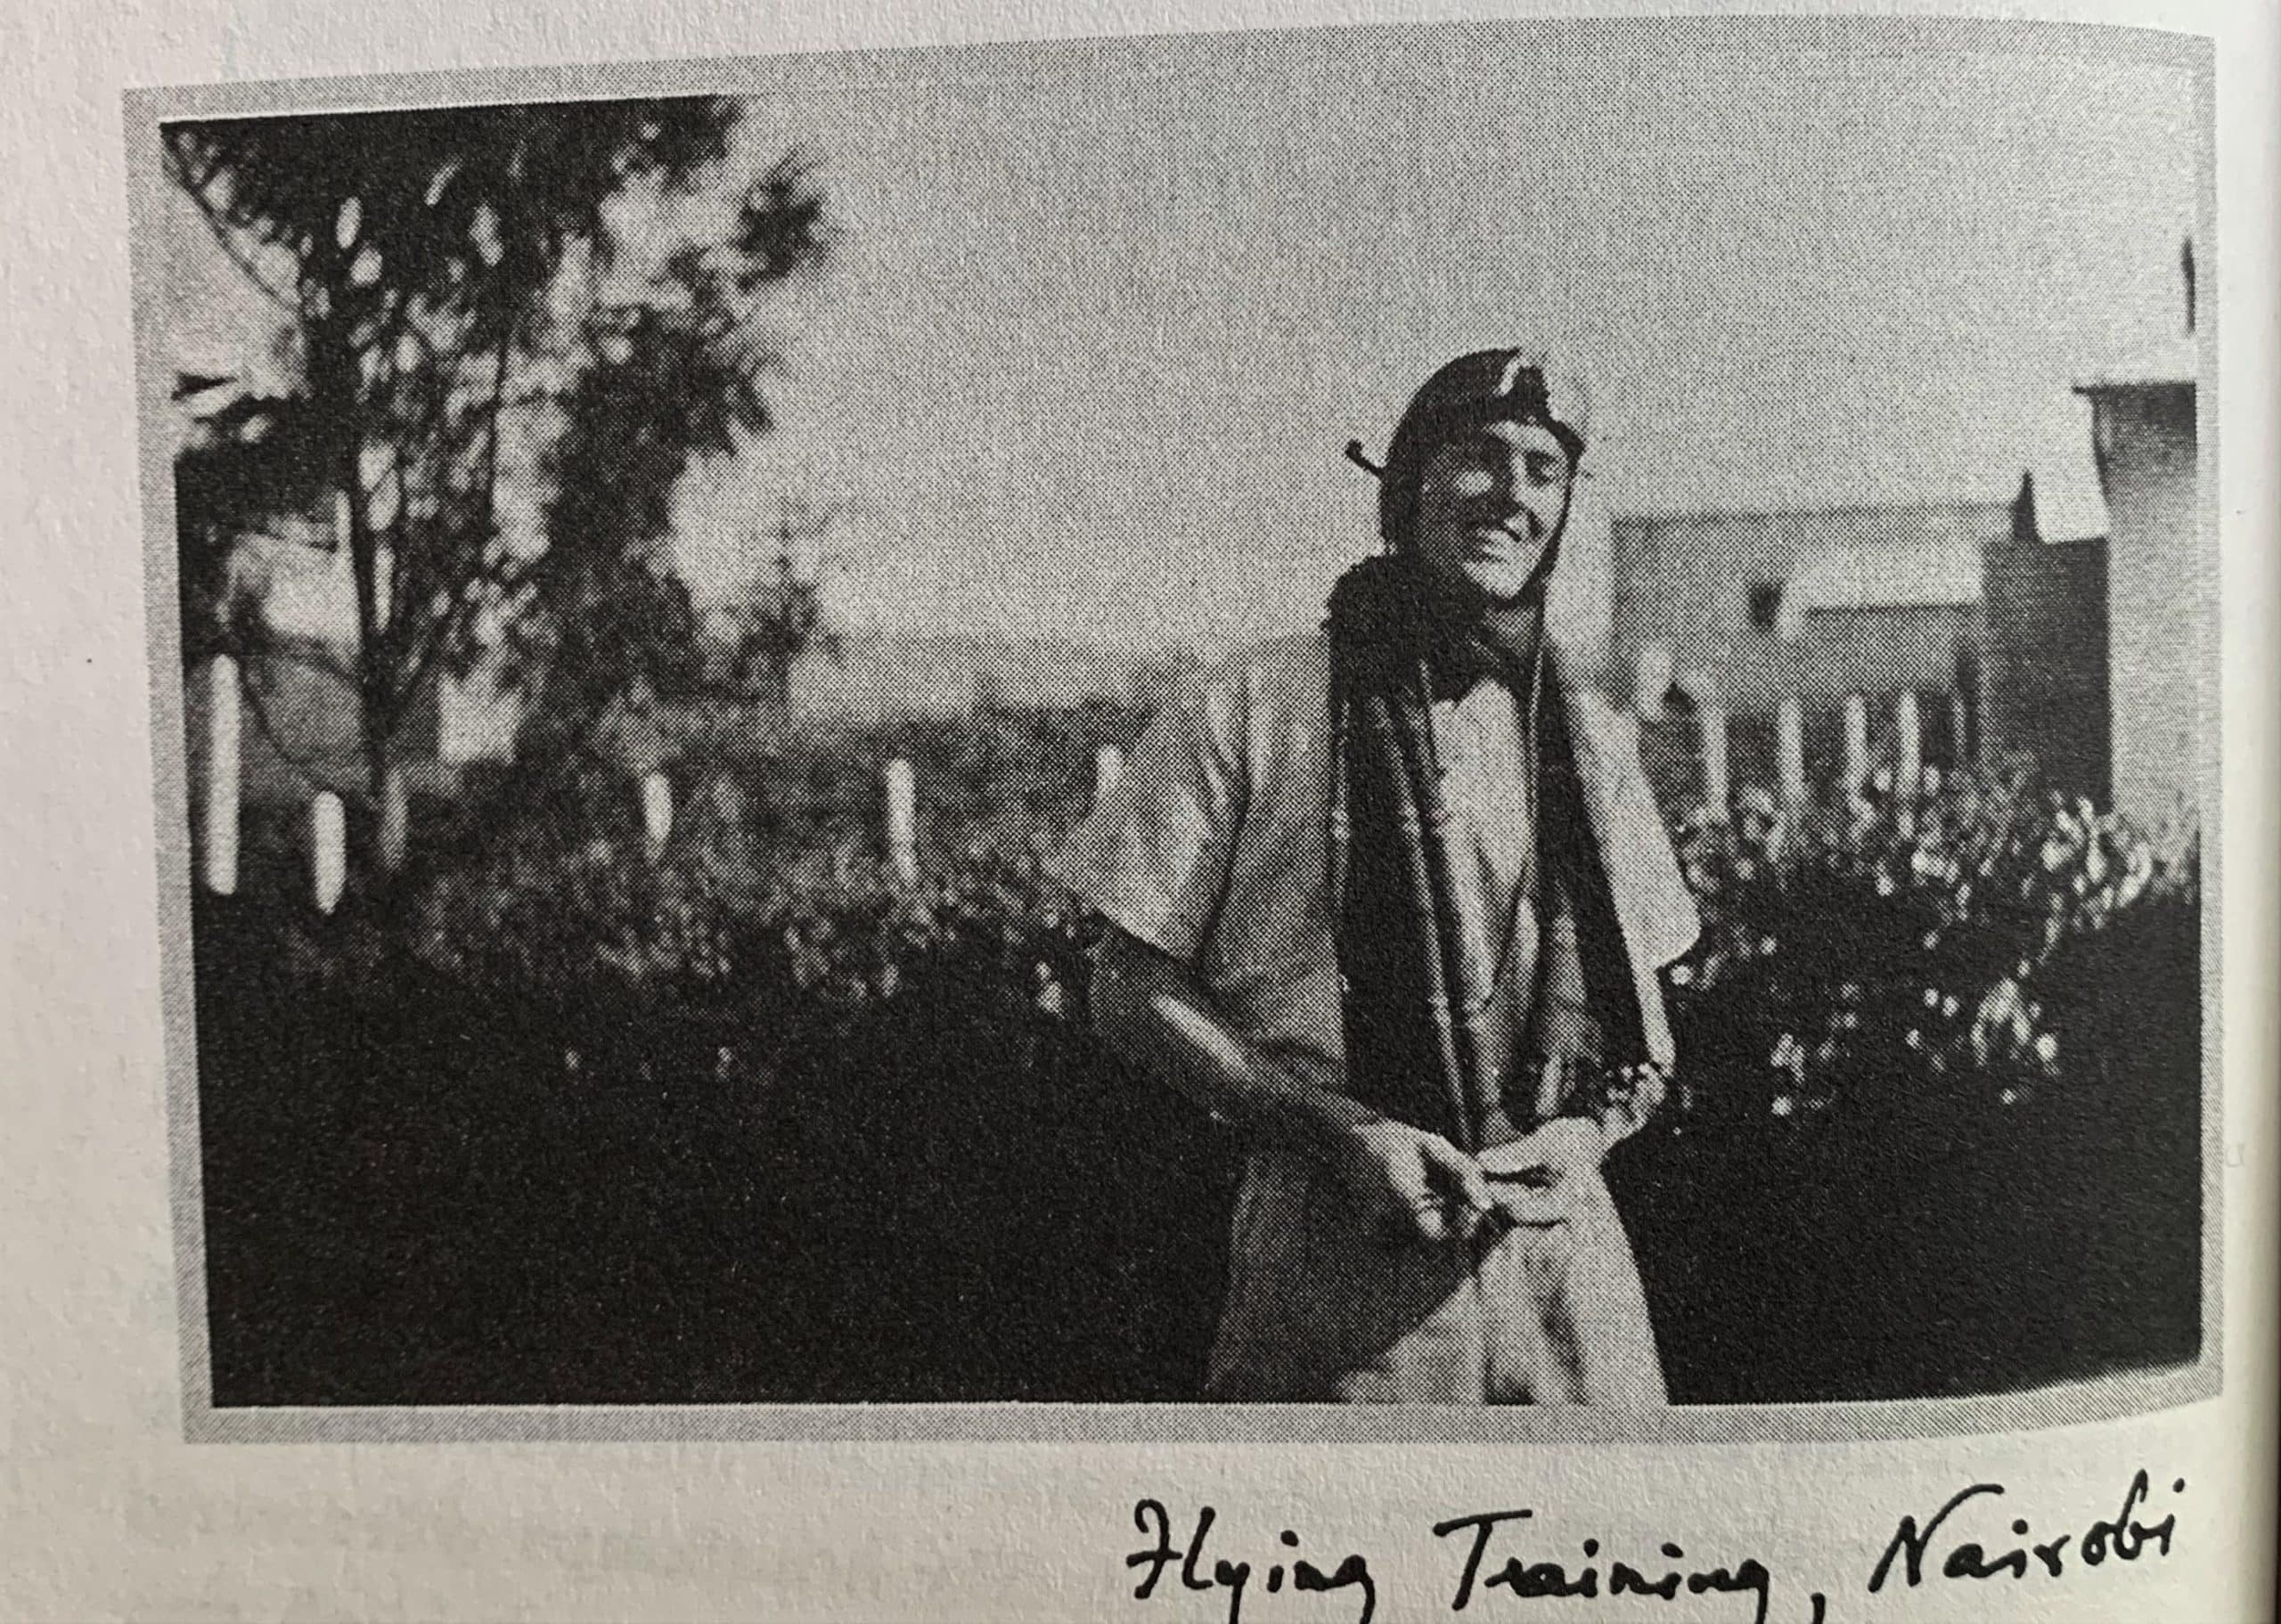 """Photo of Roald Dahl in Dahl's """"Going Solo"""" in the Examined Life Library."""